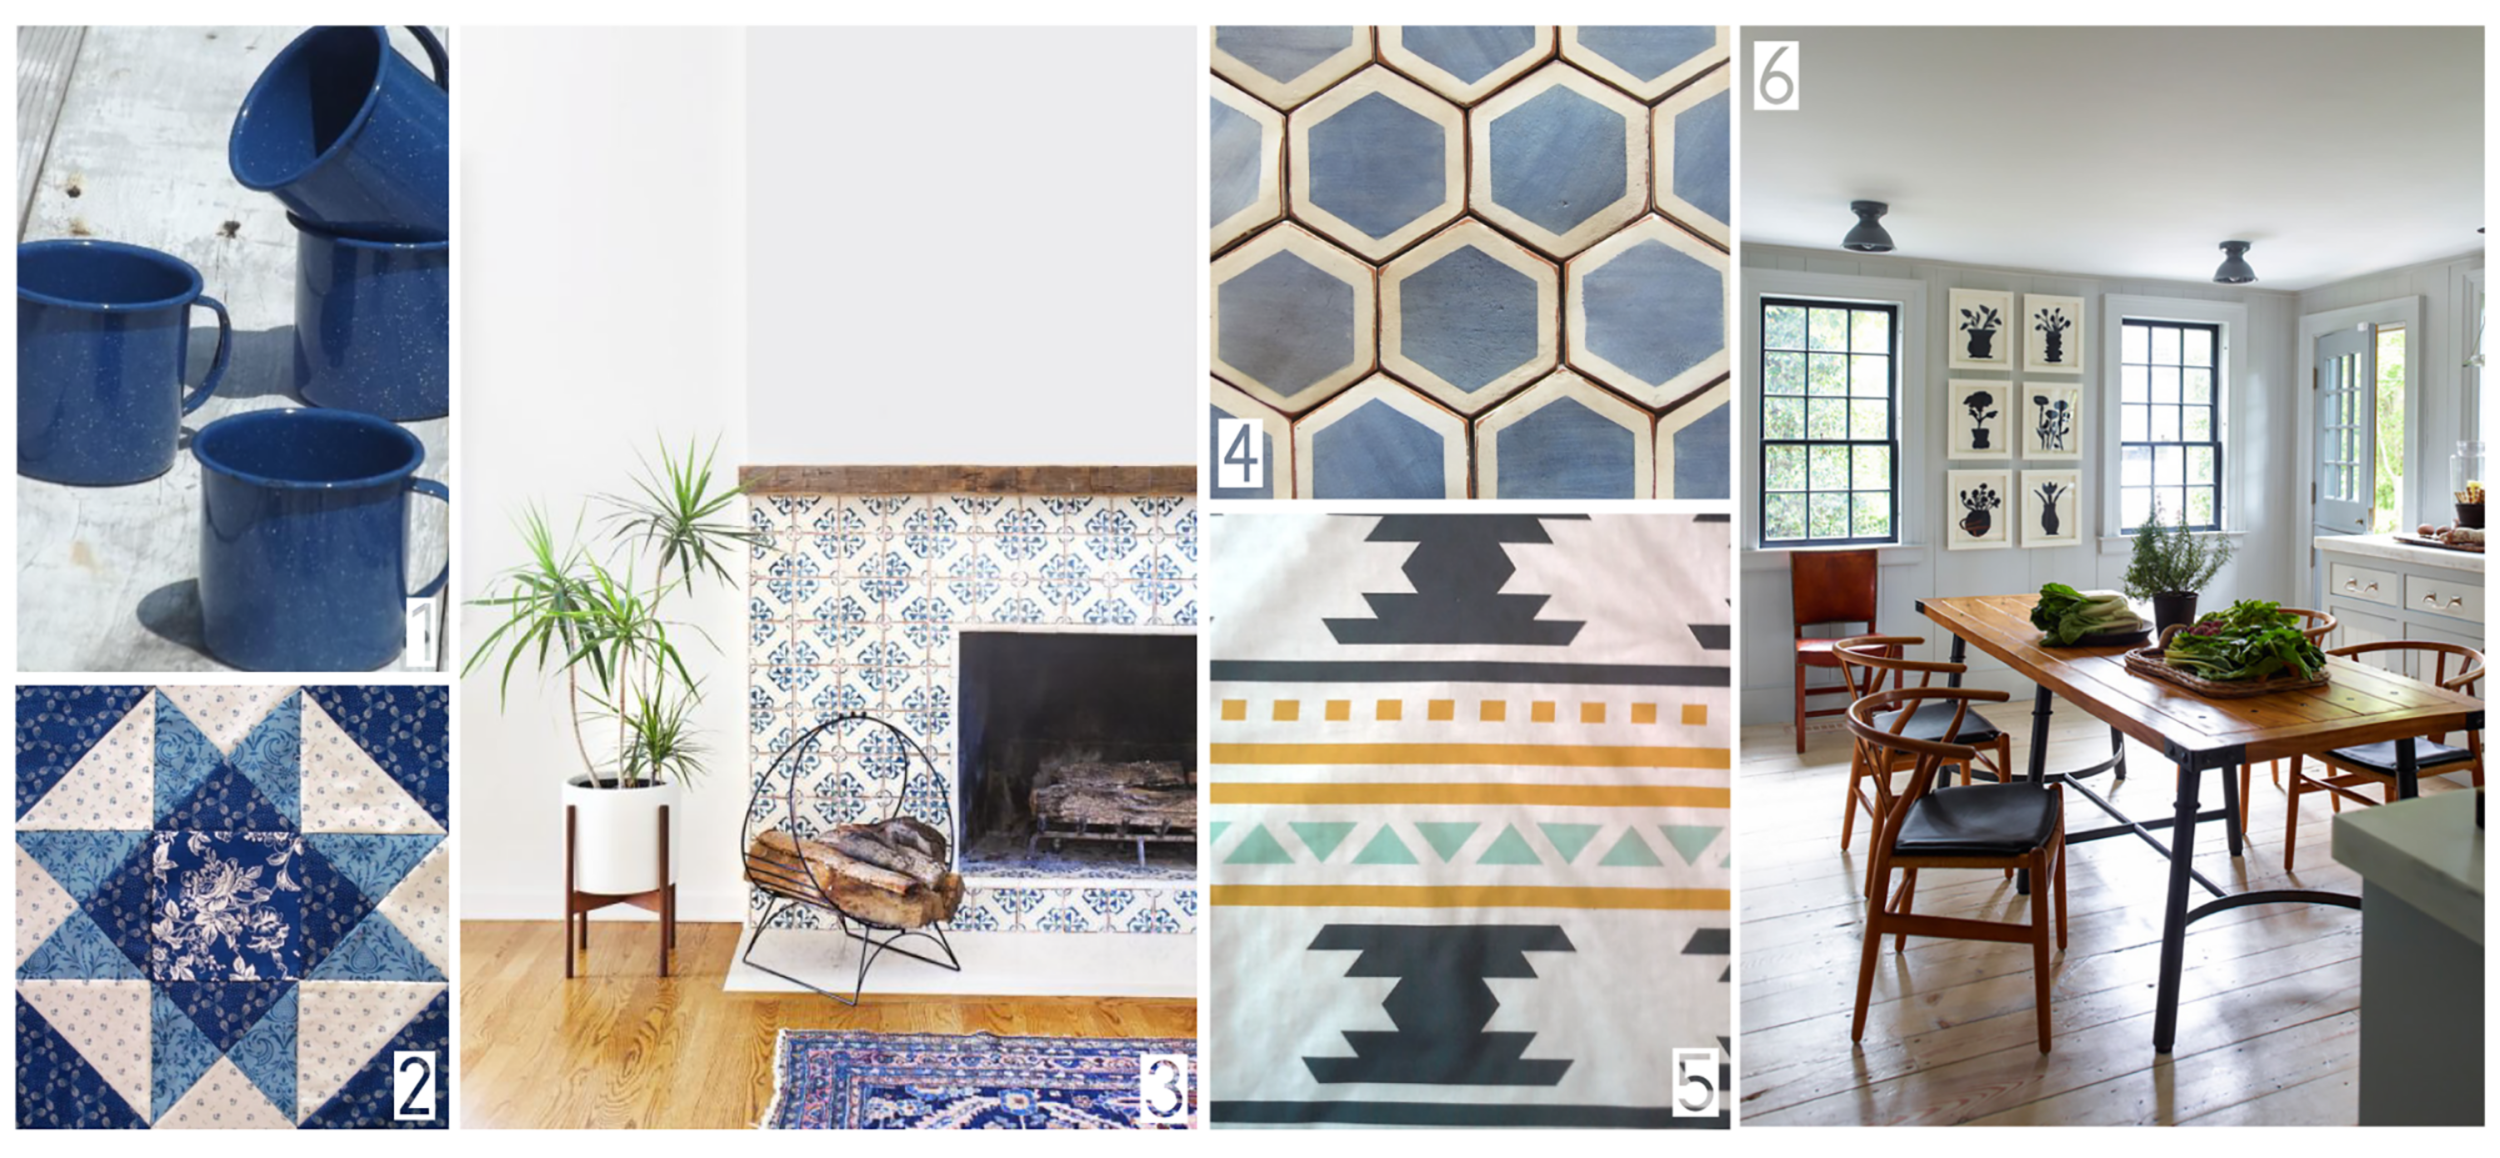 1. Vintage Camping Mugs (can be purchased  here ) 2.Blue Quilt Pattern 3. Good Housekeeping's featured  A Bright, Airy (and Blue!) California Home  4.Gorgeous  Tabarka Studio Tiles  5.Classic, Tipi-inspired Tribal Prints 6.The Rustic use of wood and light blue in  Steven Gambrel's Sag Harbor Project